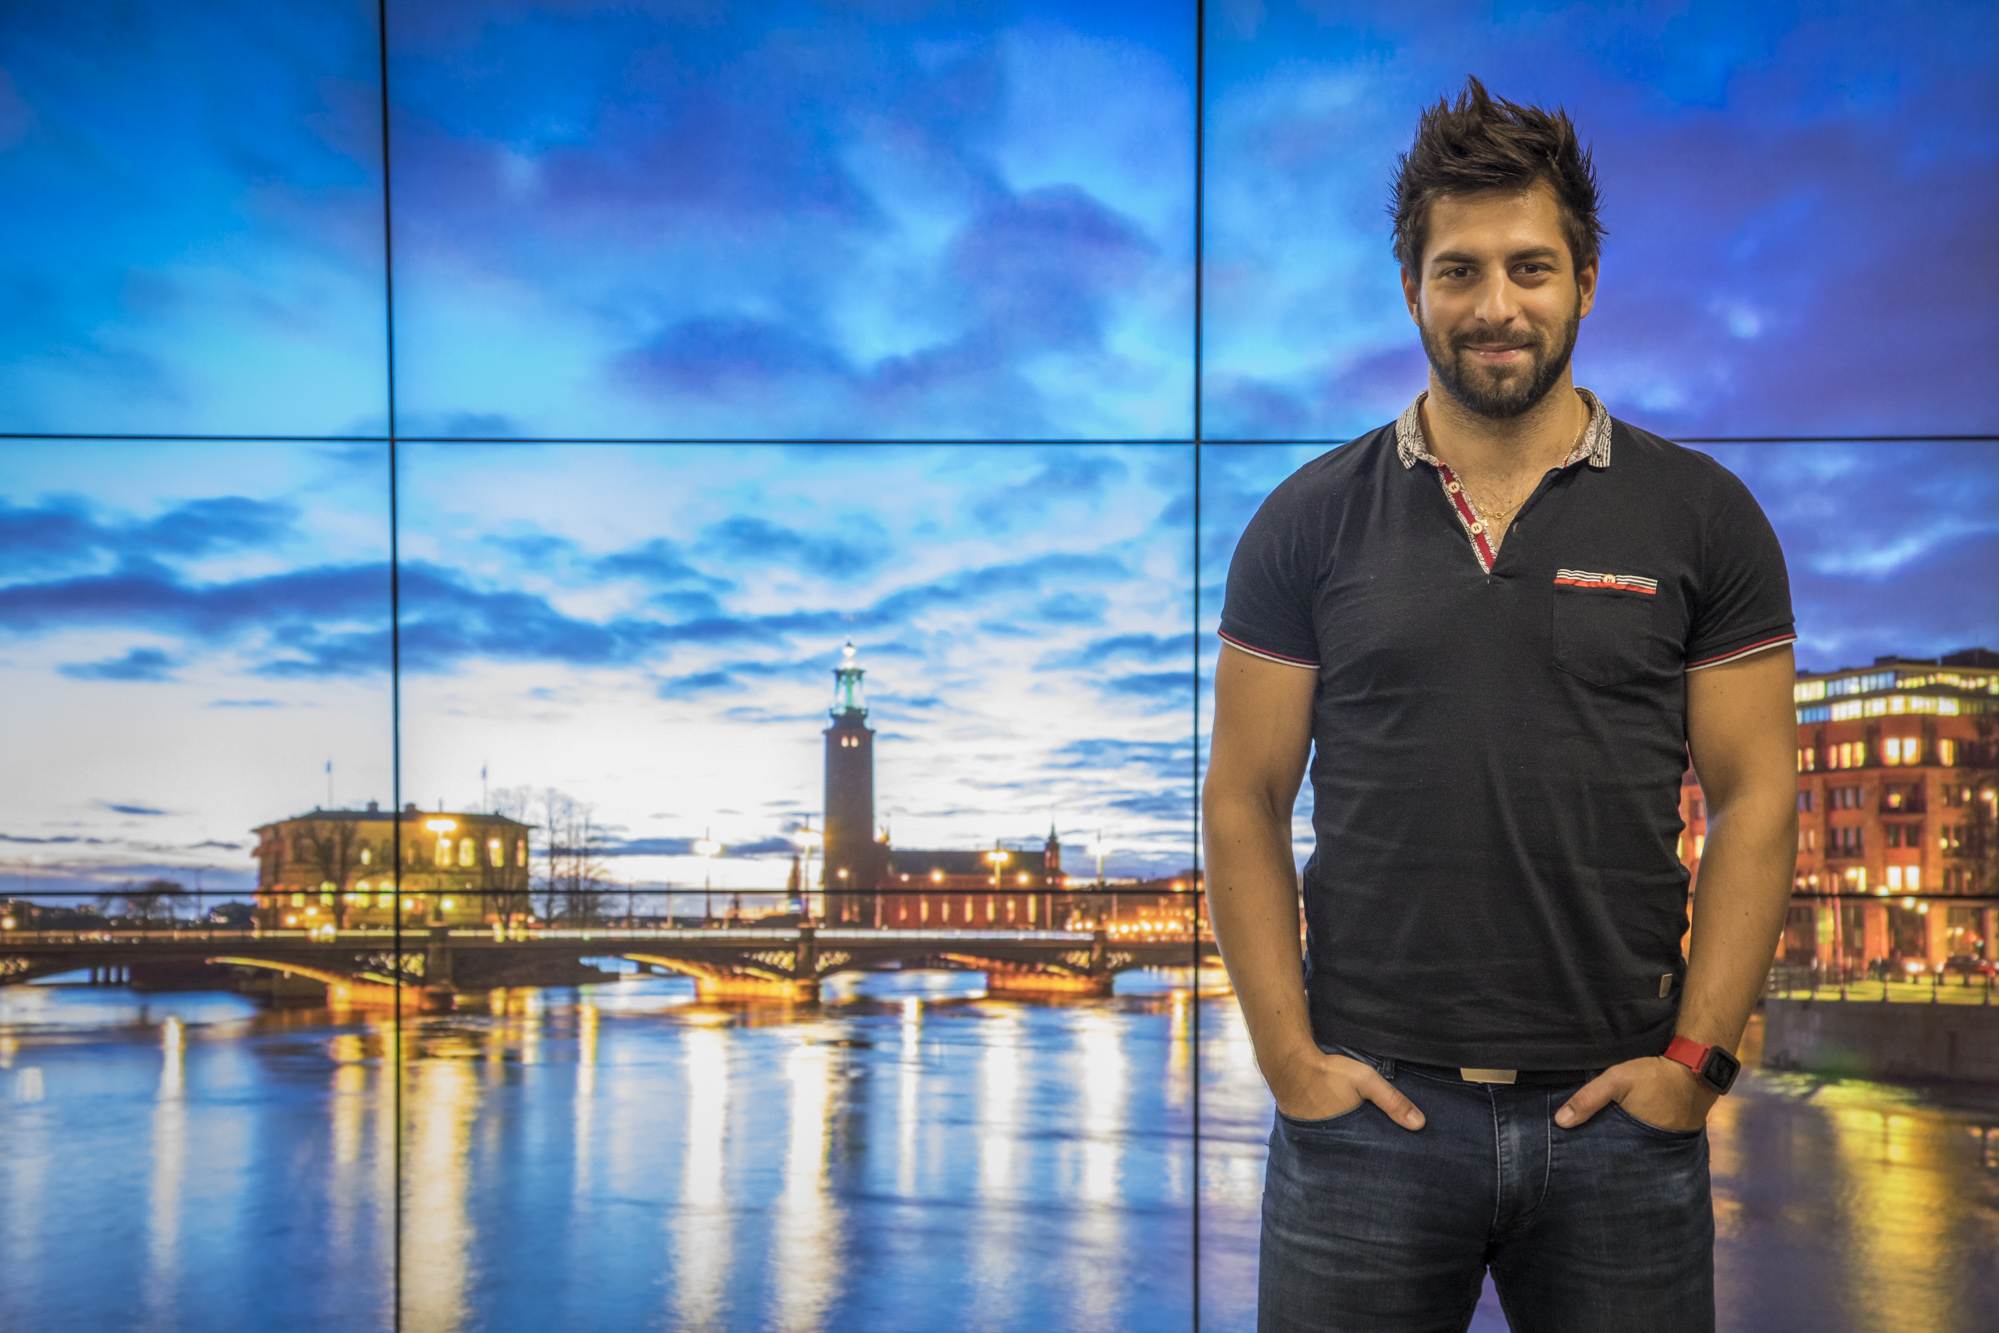 Android developer Artur Glier spent three months working for Aftonbladet TV in Stockholm